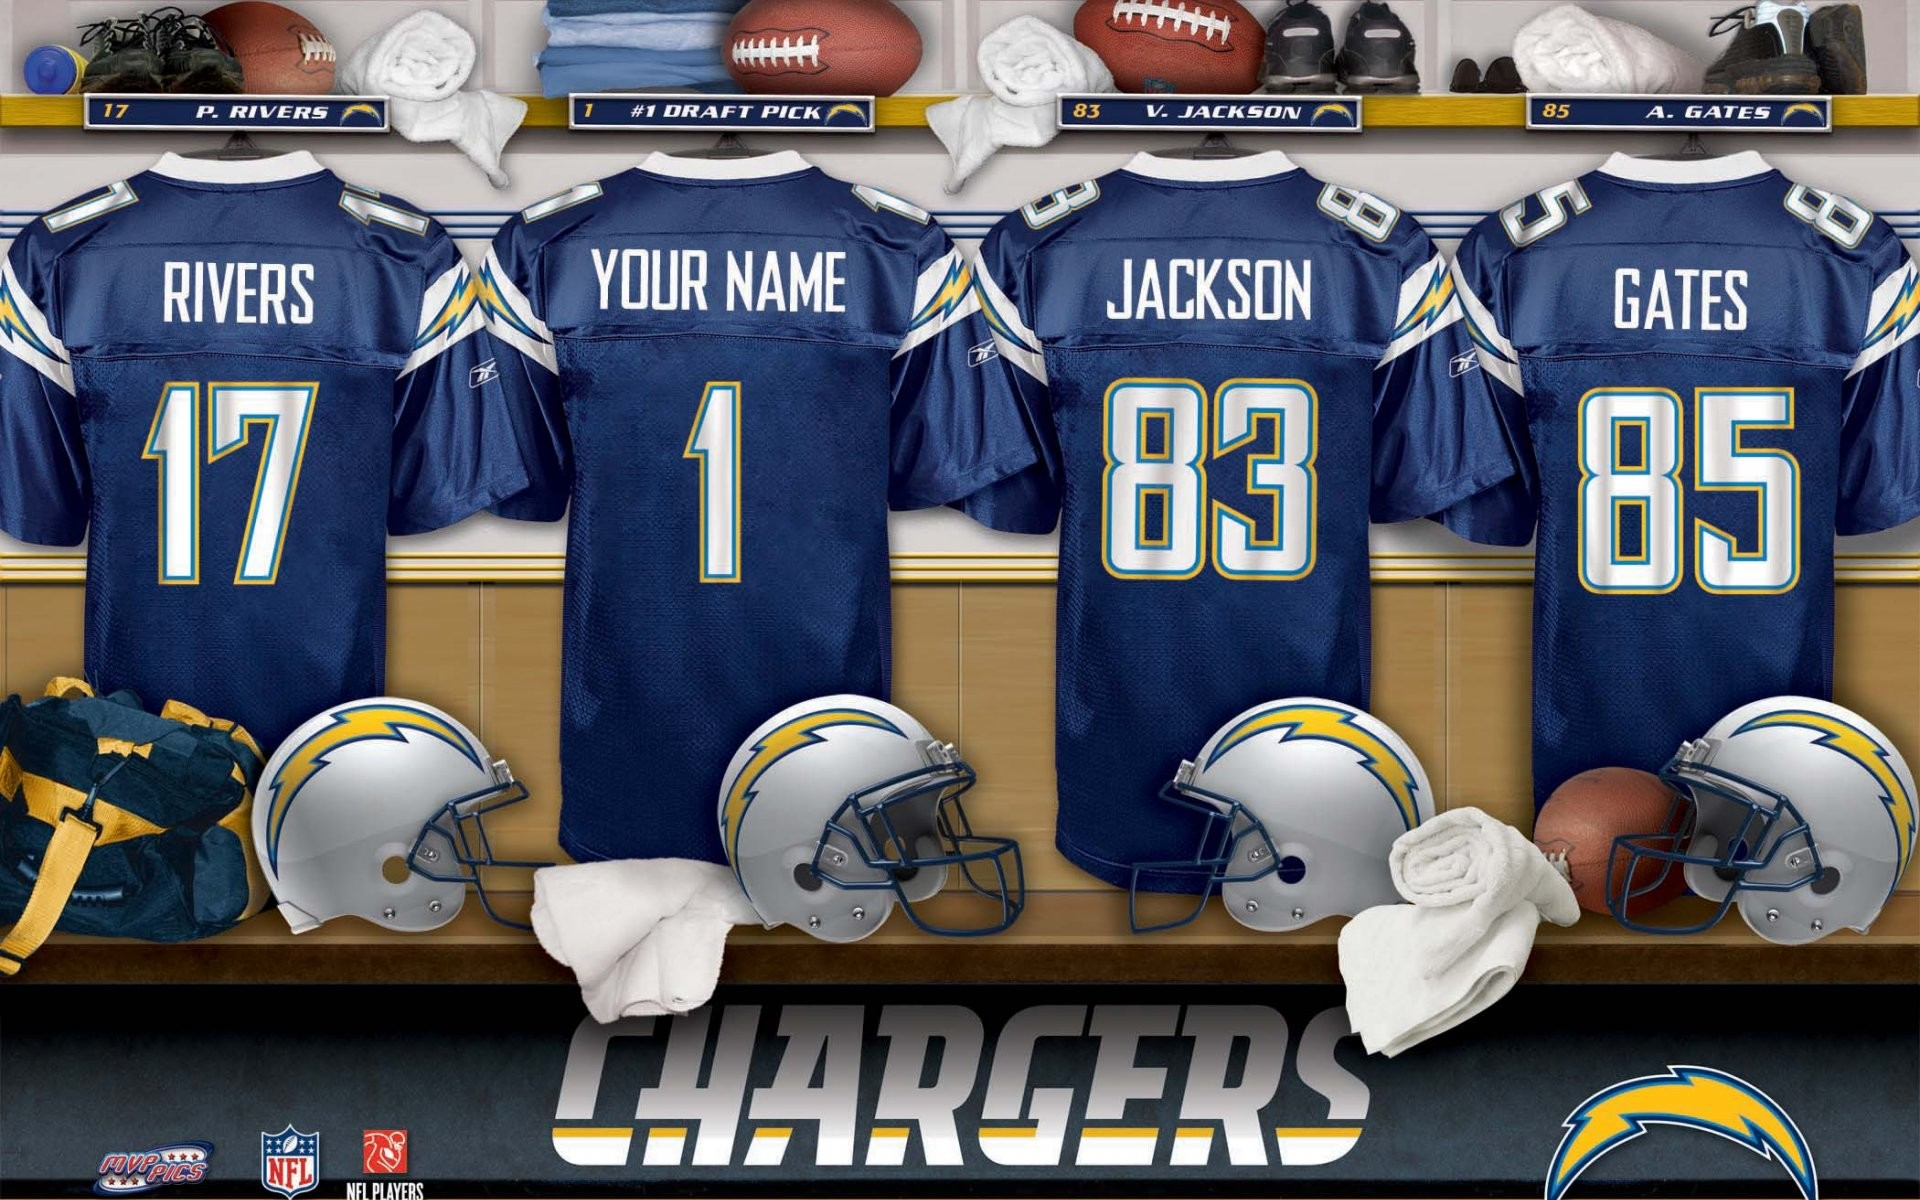 1920x1200 San-diego-chargers-team-uniforms-american-football-helmets-